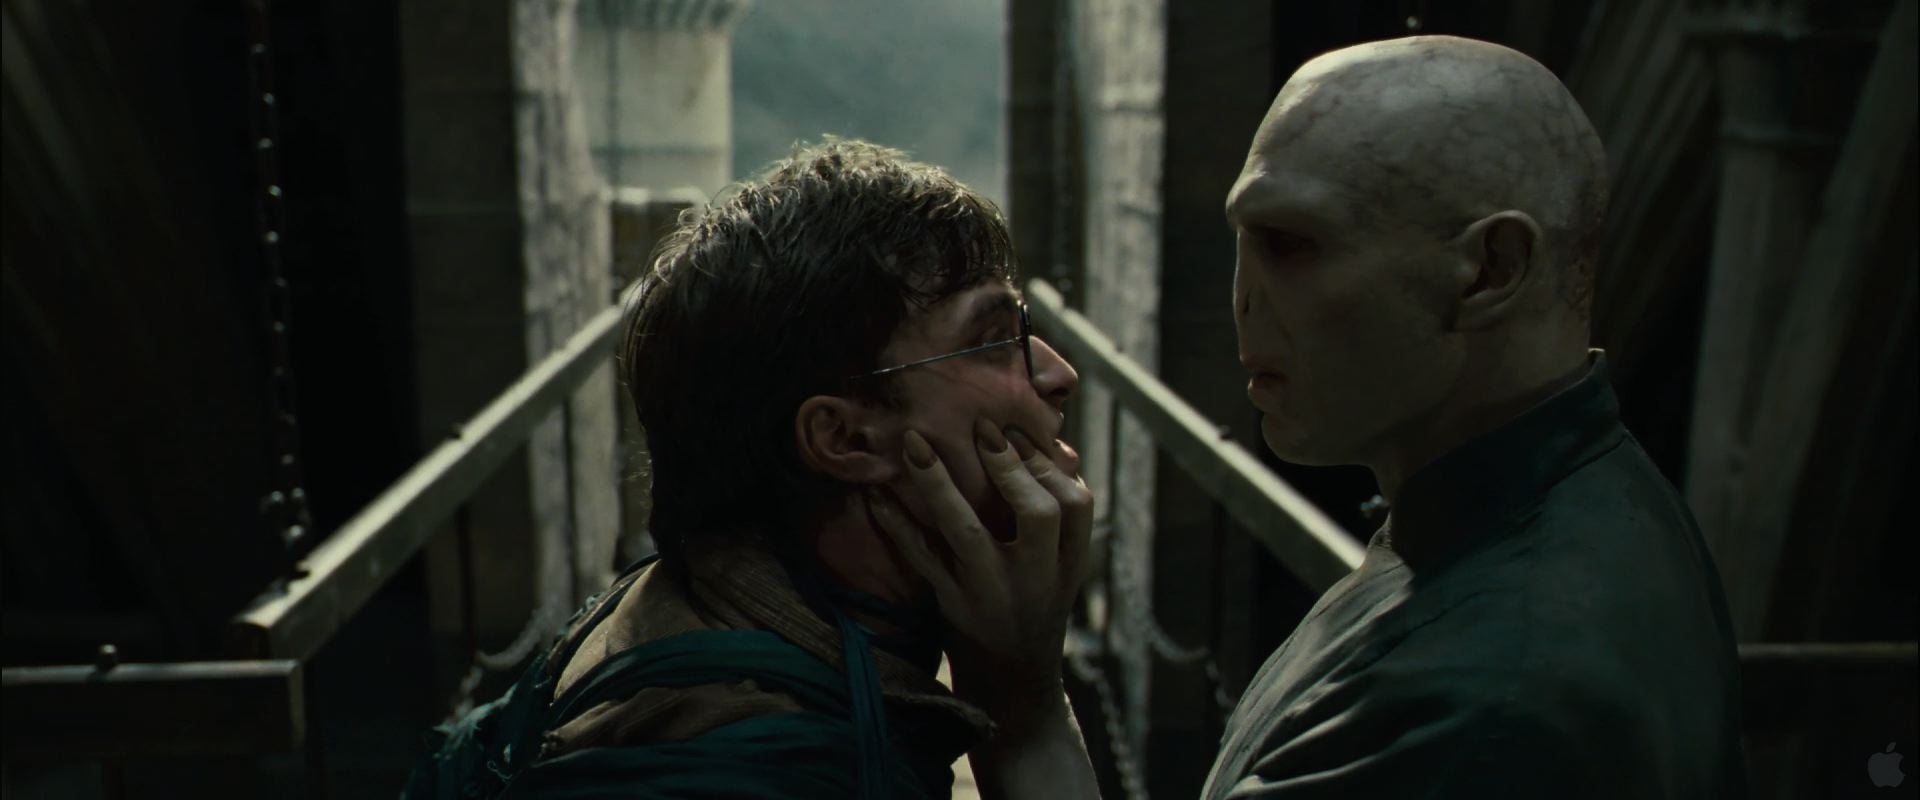 voldemort confronts harry from harry potter and the deathly hallows